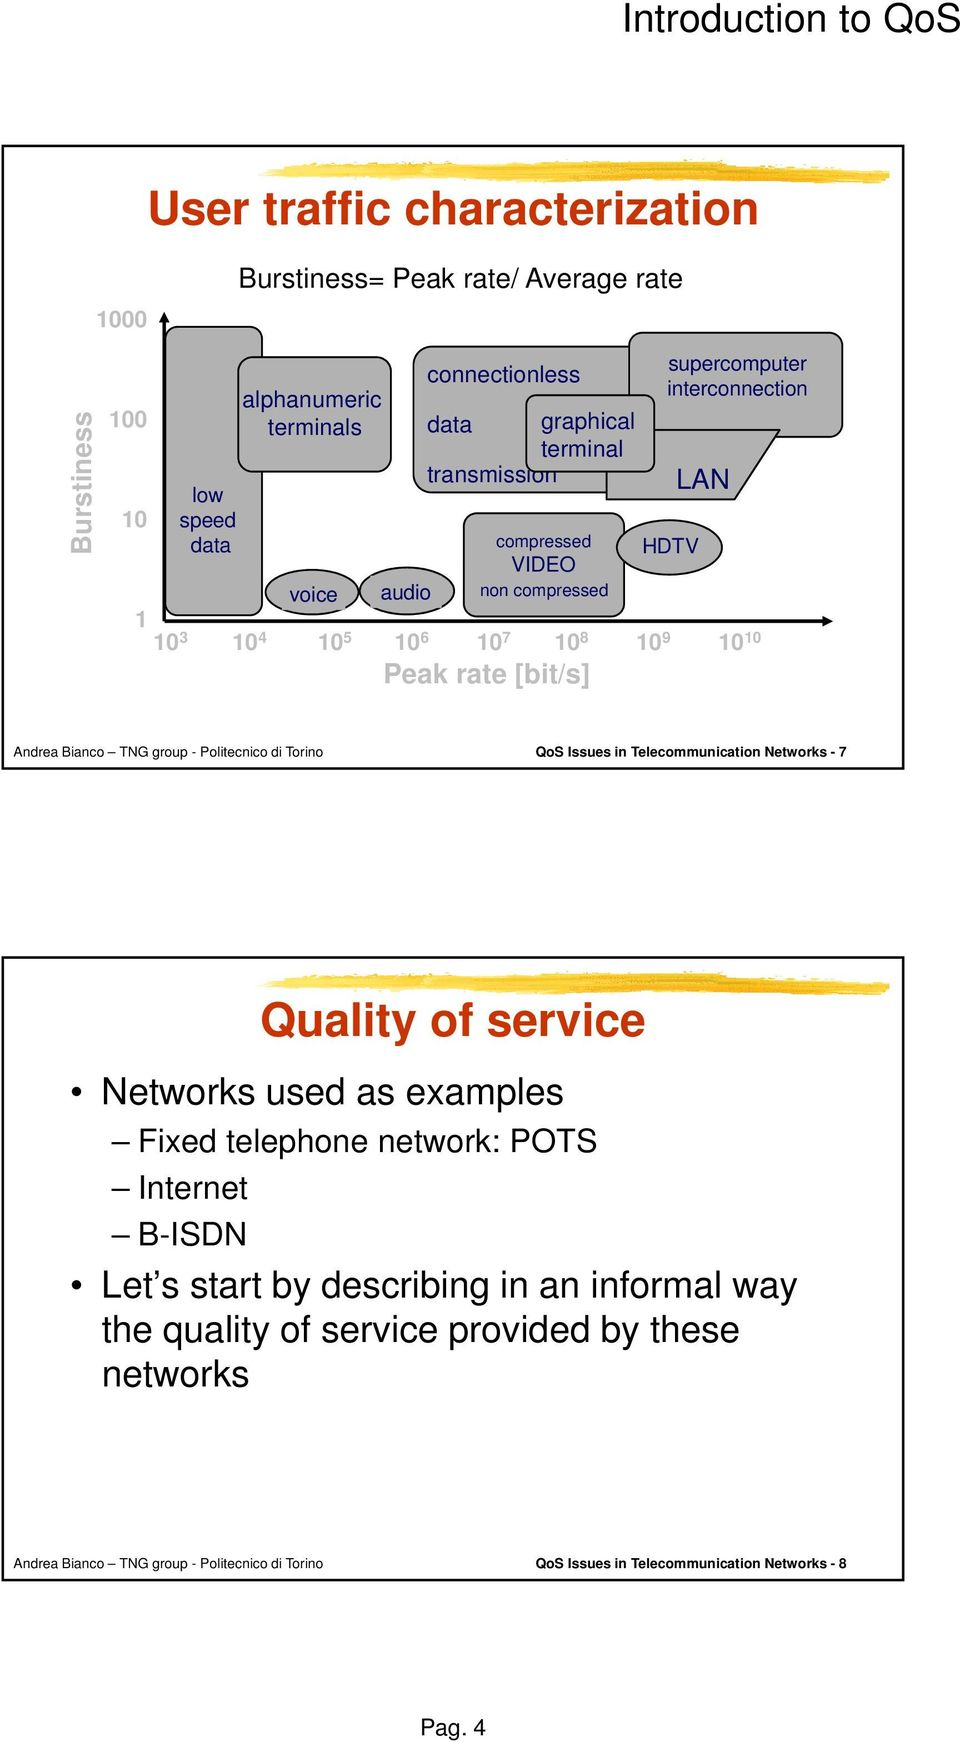 7 10 8 10 9 10 10 Peak rate [bit/s] QoS Issues in Telecommunication Networks - 7 Quality of service Networks used as examples Fixed telephone network: POTS